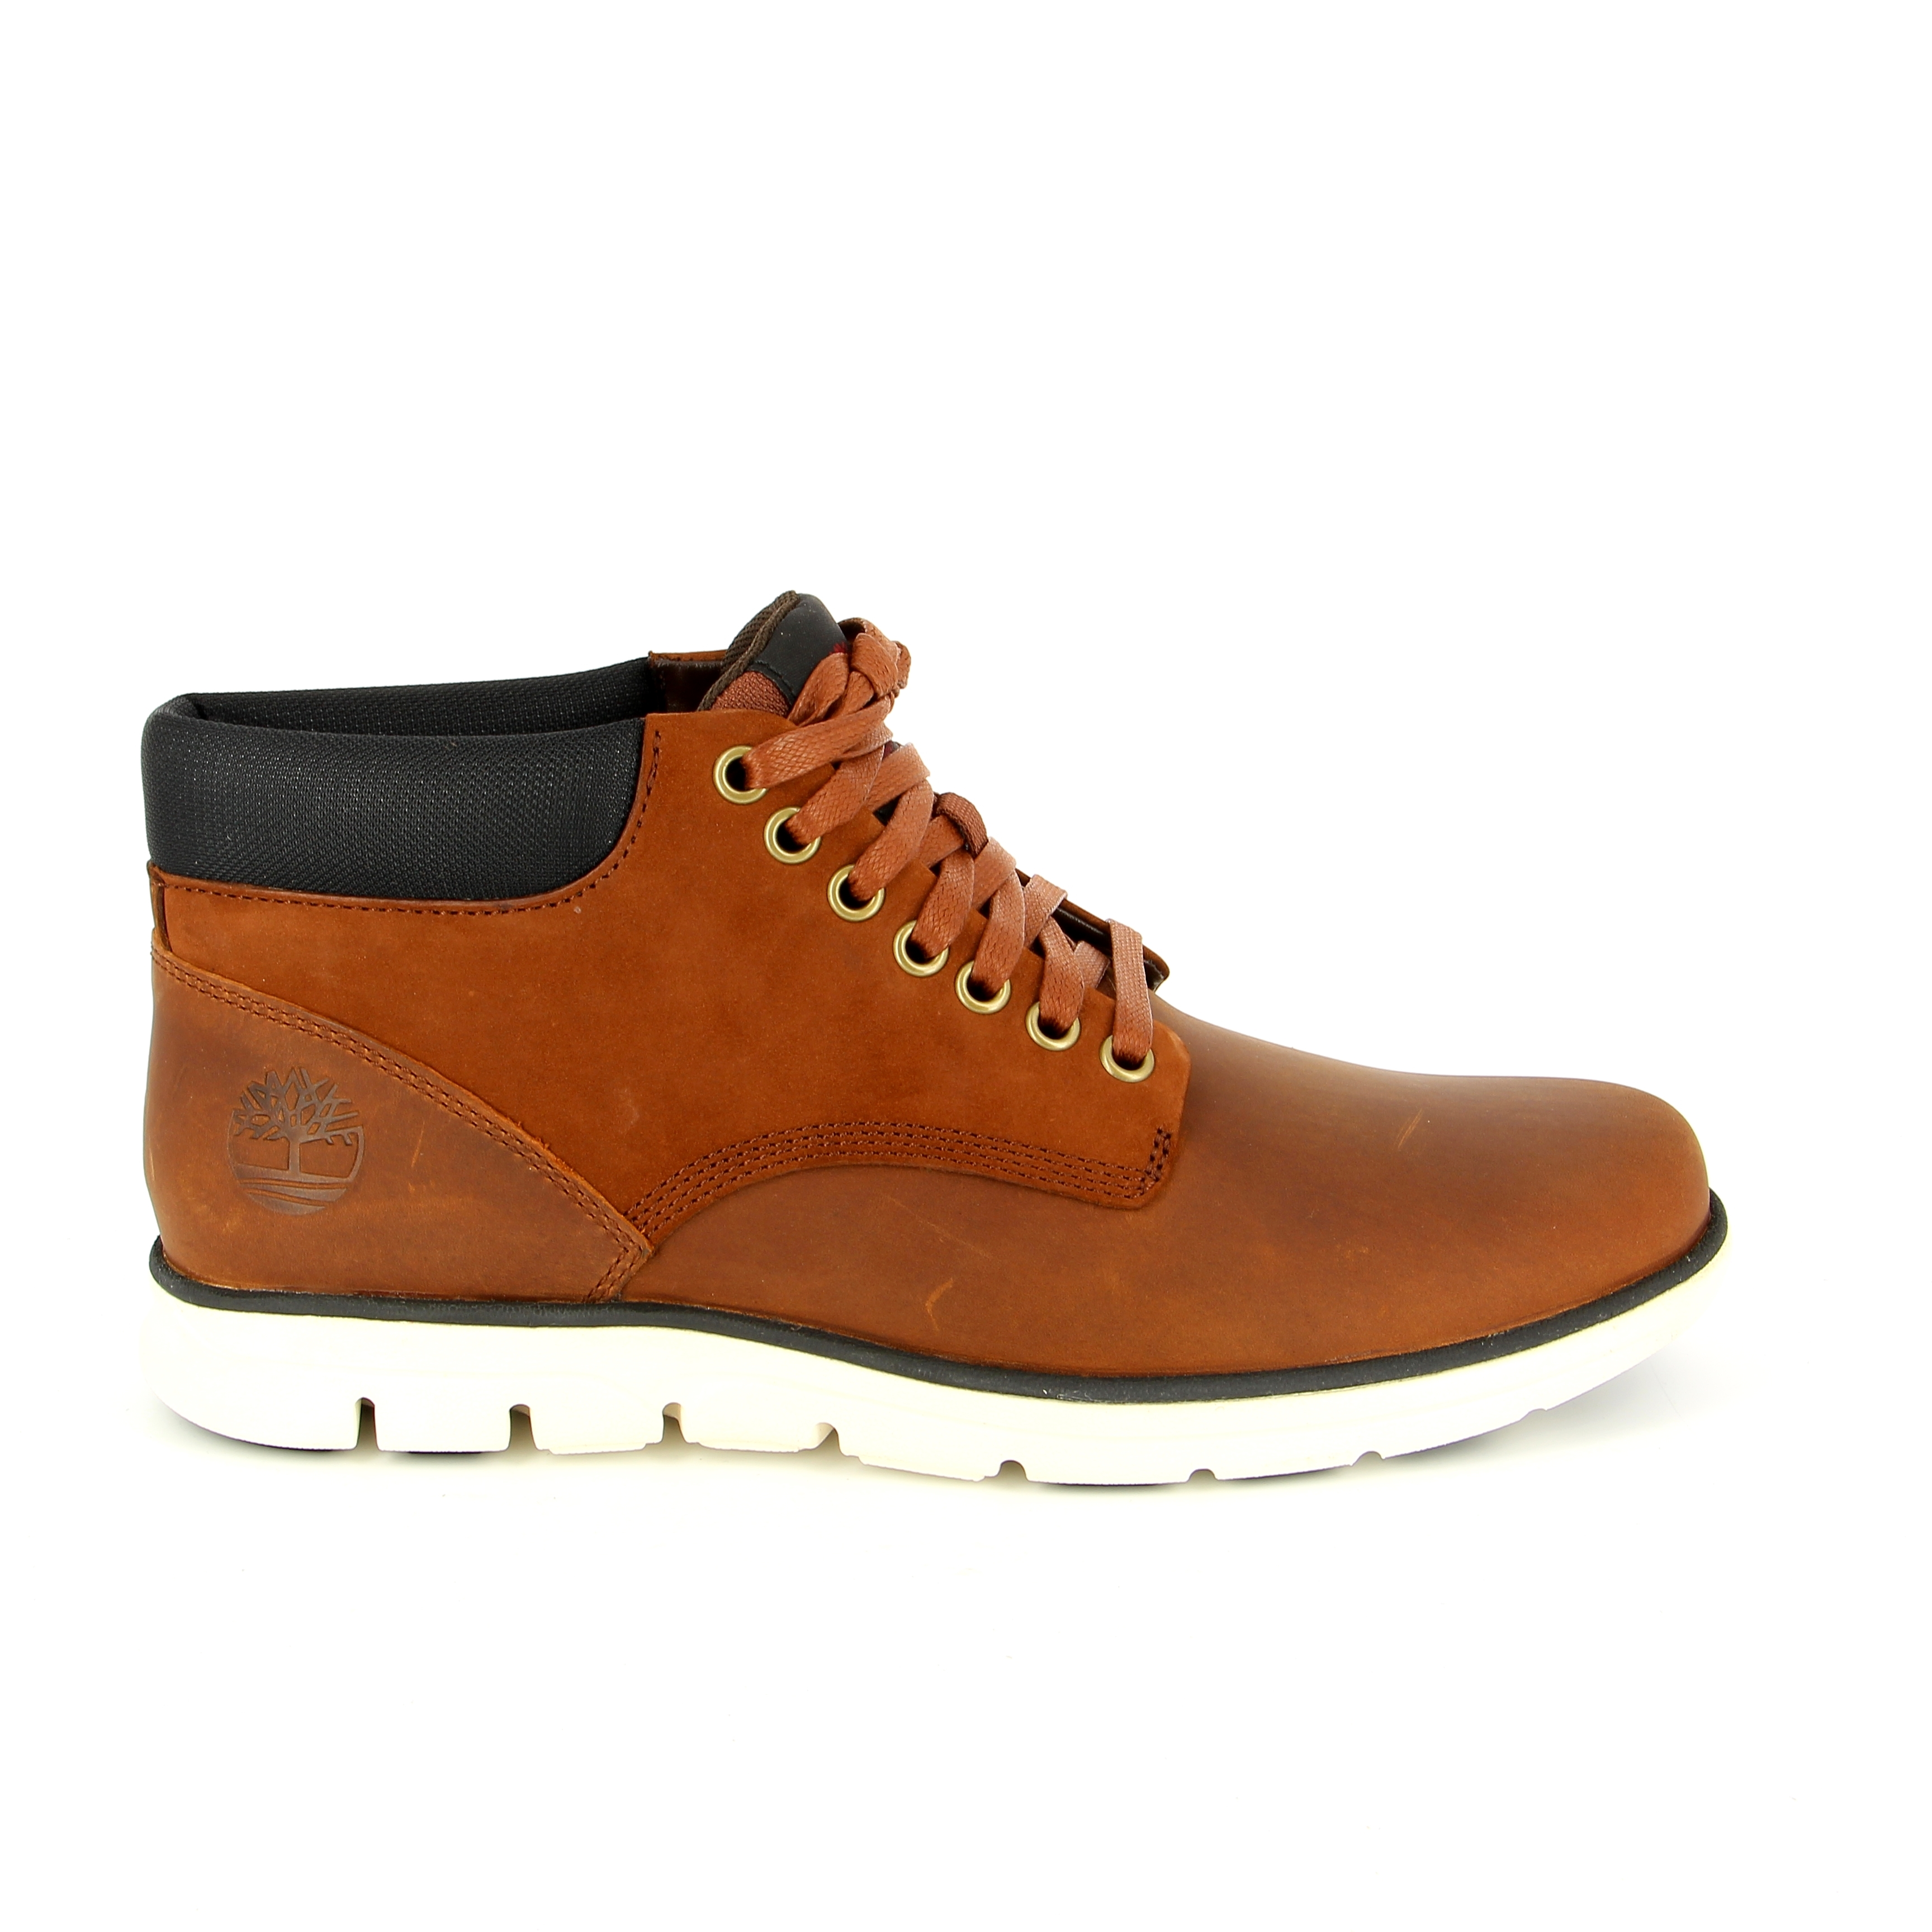 Timberland Bottinen cognac